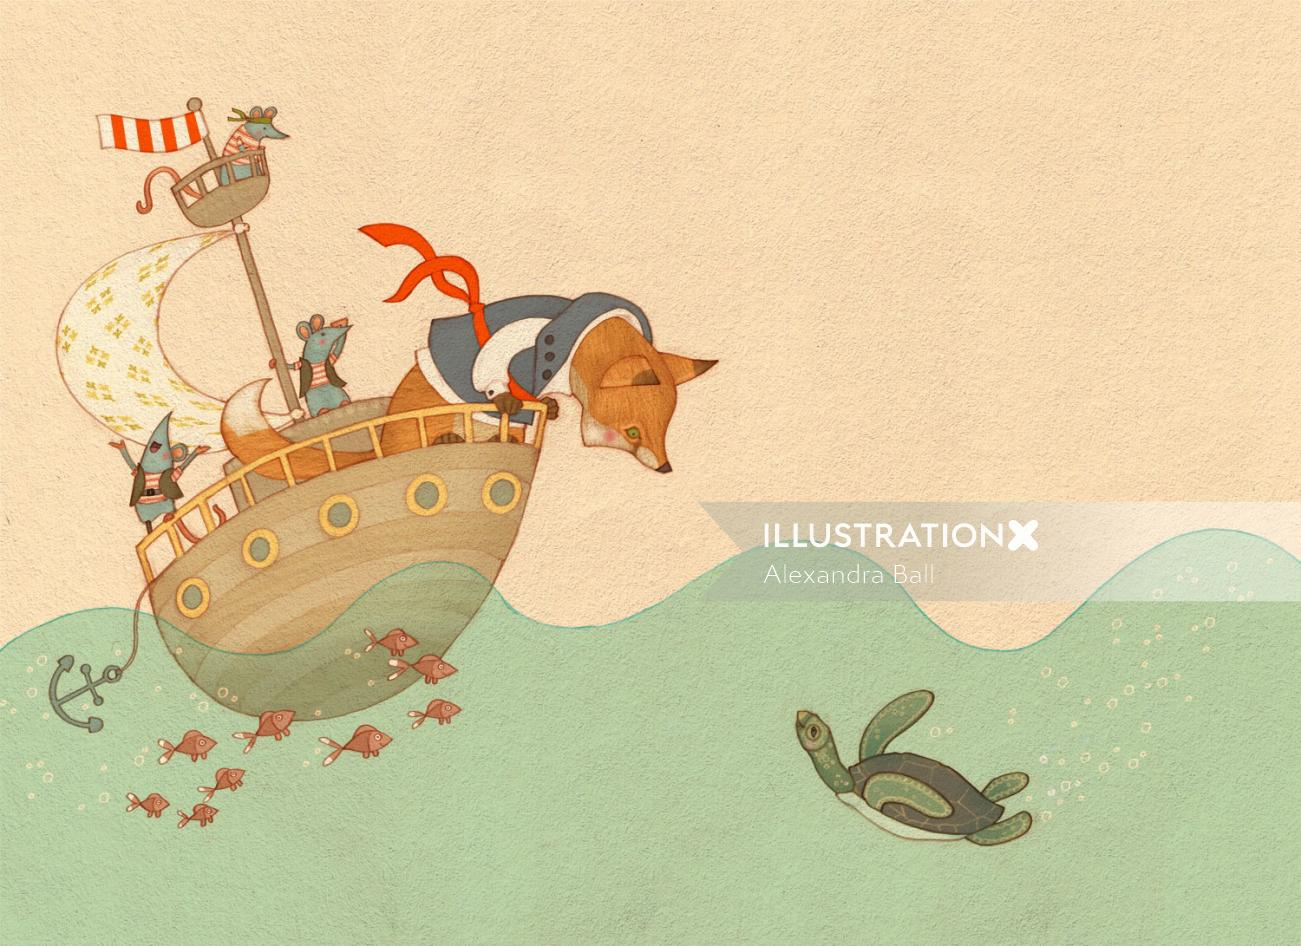 An illustration of fox pirate and mice in boat sailing